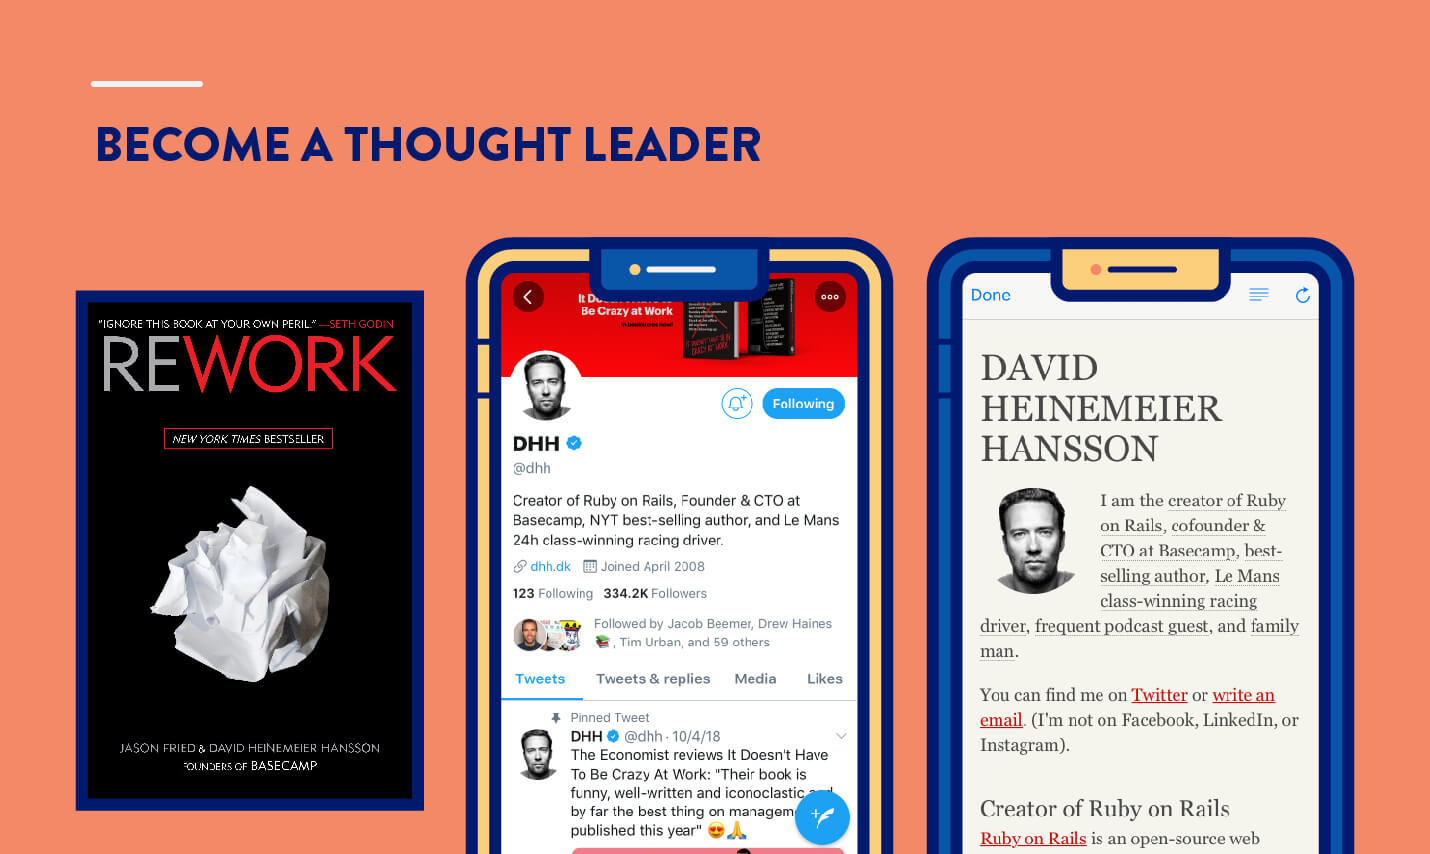 become a thought leader example from Daniel Heinemelier Hansson DHH author, twitter, and personal blog example for app marketing